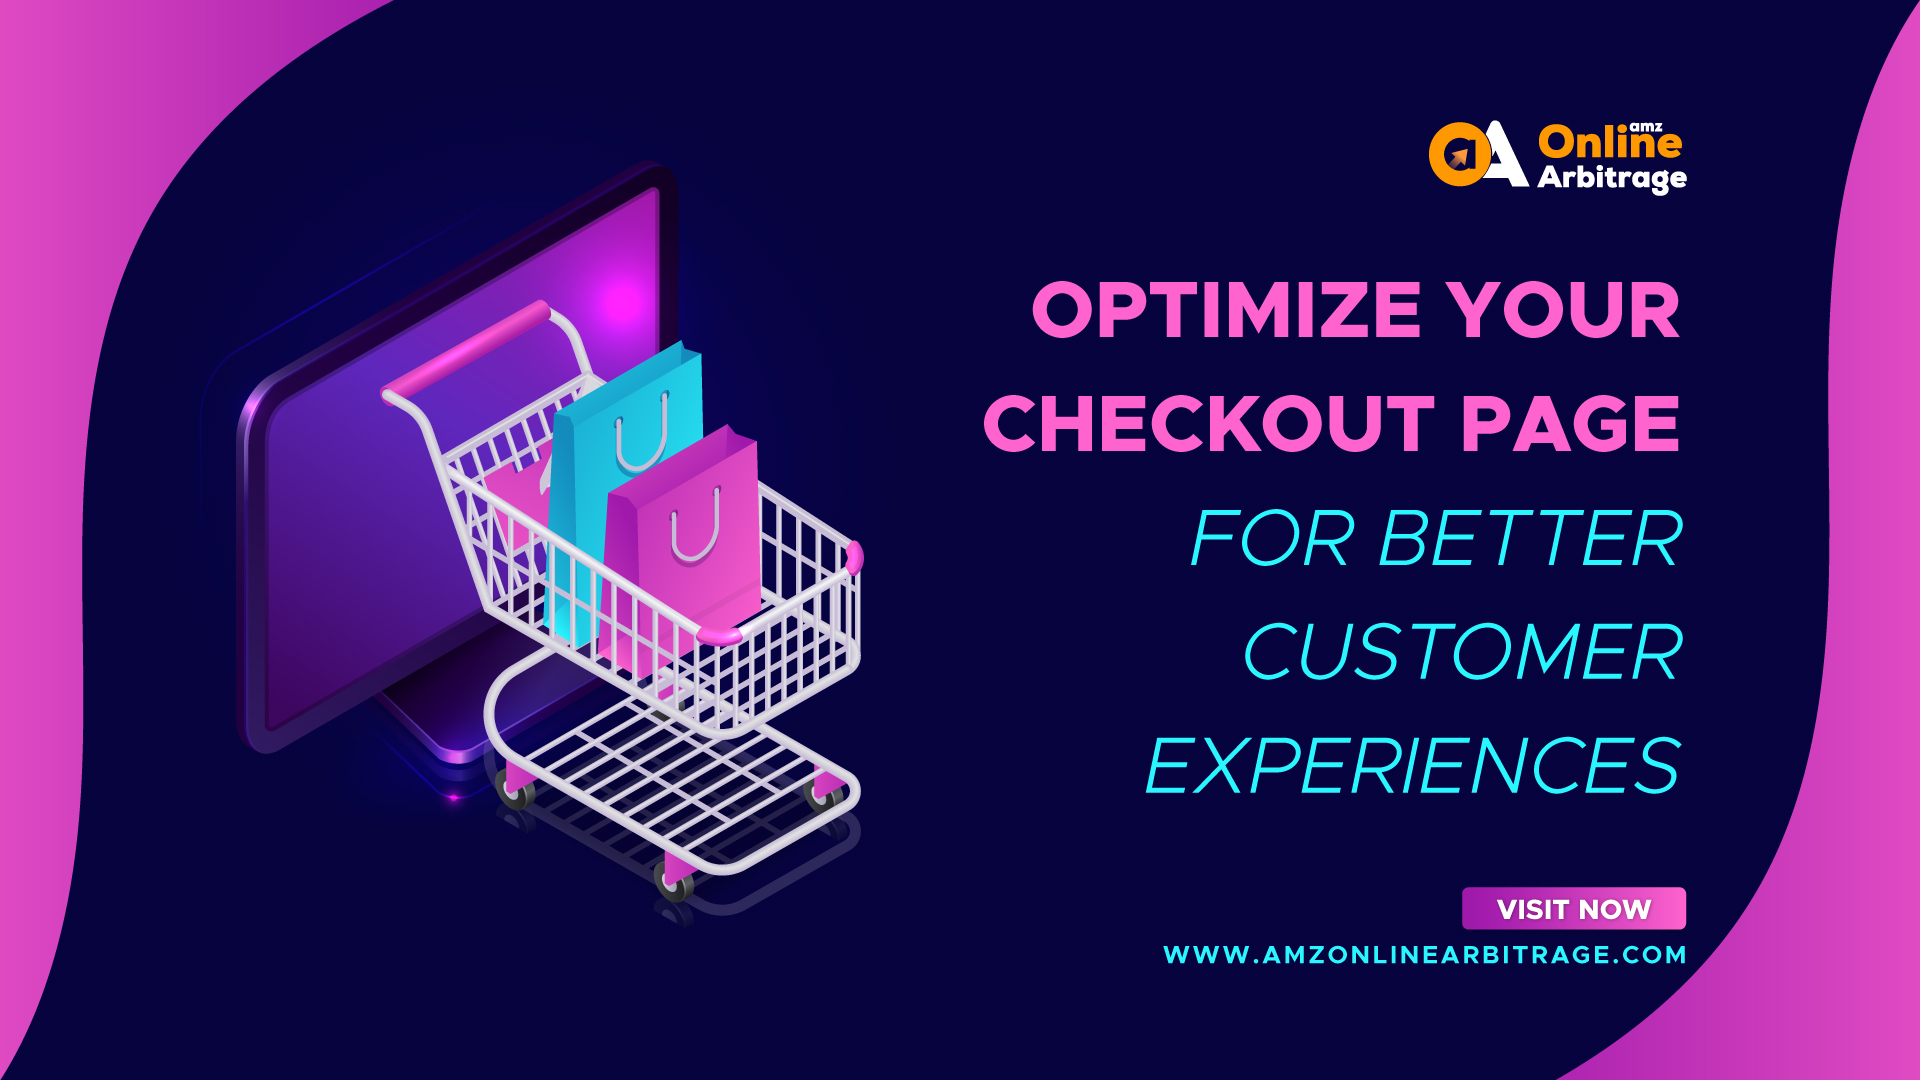 OPTIMIZE YOUR CHECKOUT PAGE FOR BETTER CUSTOMER EXPERIENCES